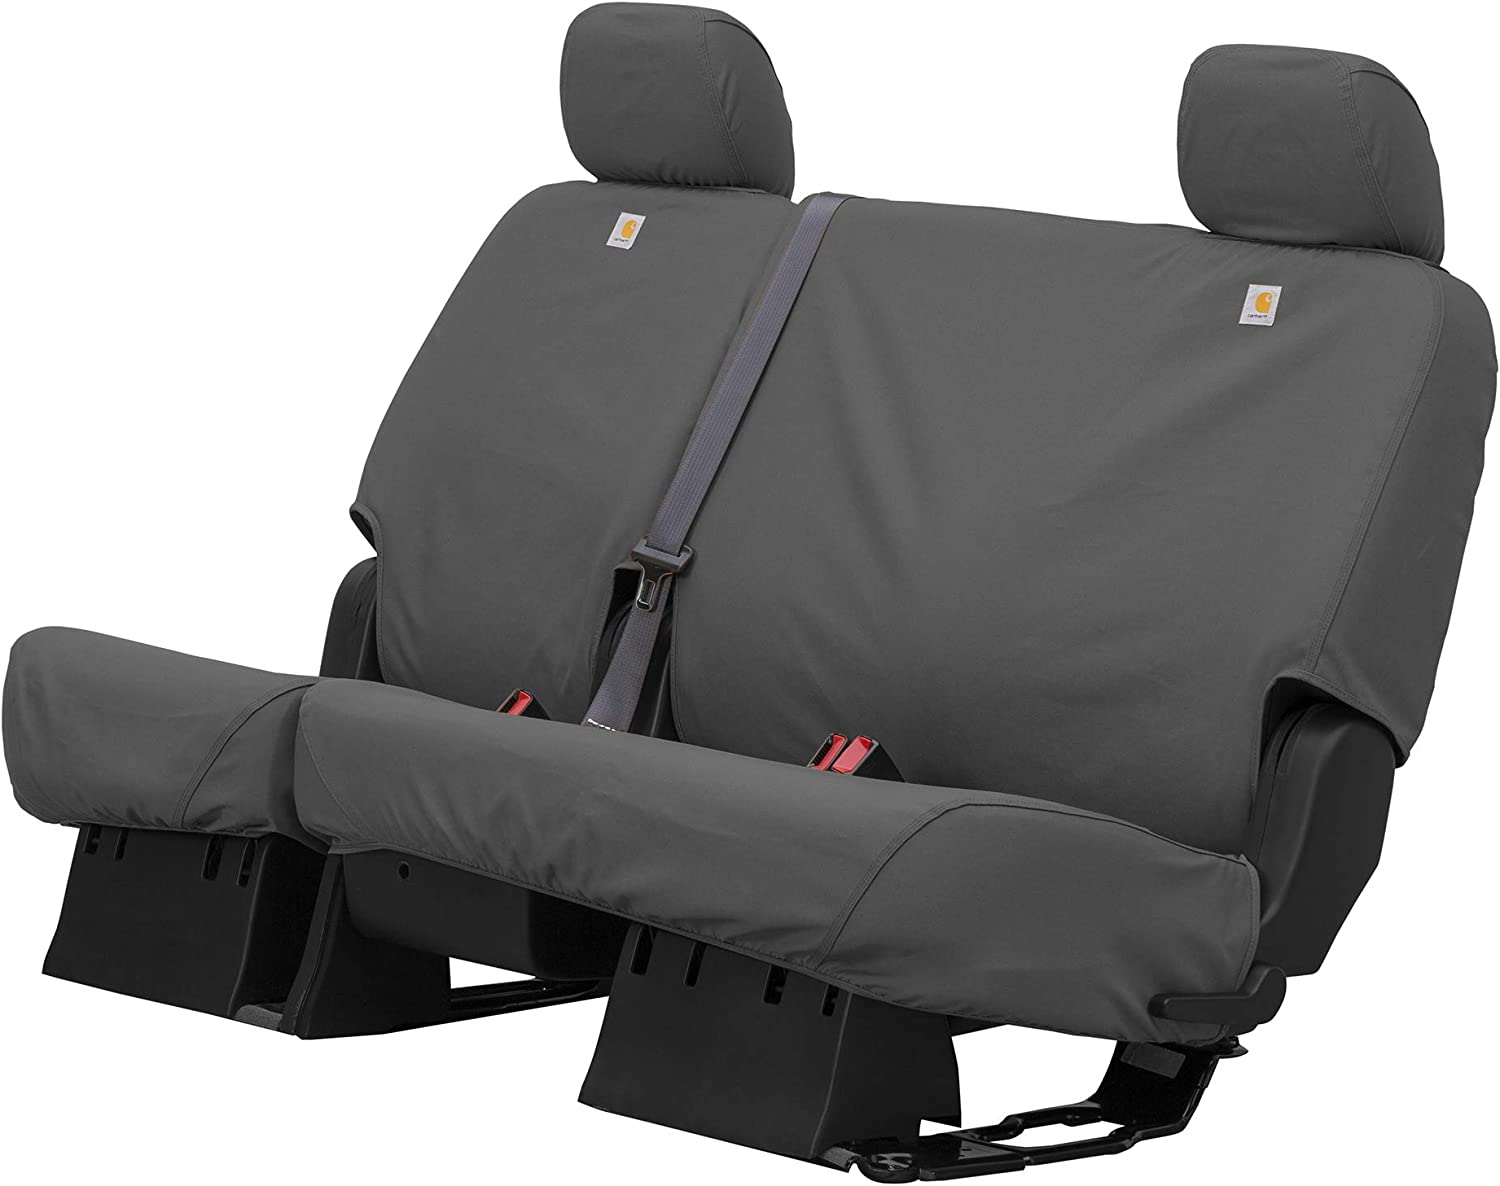 SSC8429CABN Fits Select Chevrolet Silverado//GMC Sierra Crew Cab Models Brown Covercraft Carhartt SeatSaver Custom Seat Covers 2nd Row 60//40 Bench Seat